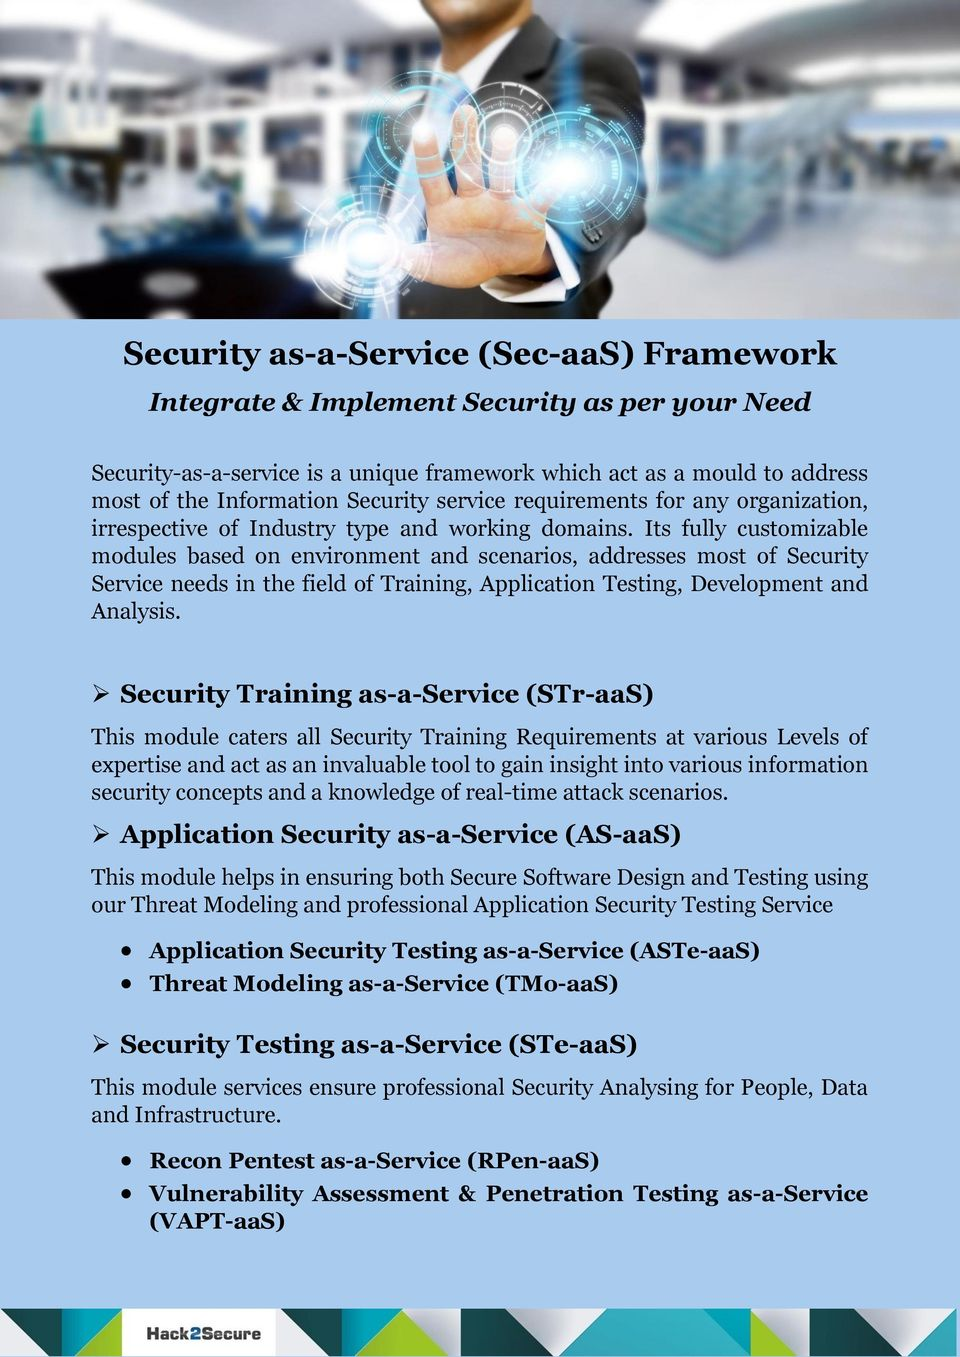 Its fully customizable modules based on environment and scenarios, addresses most of Security Service needs in the field of Training, Application Testing, Development and Analysis.